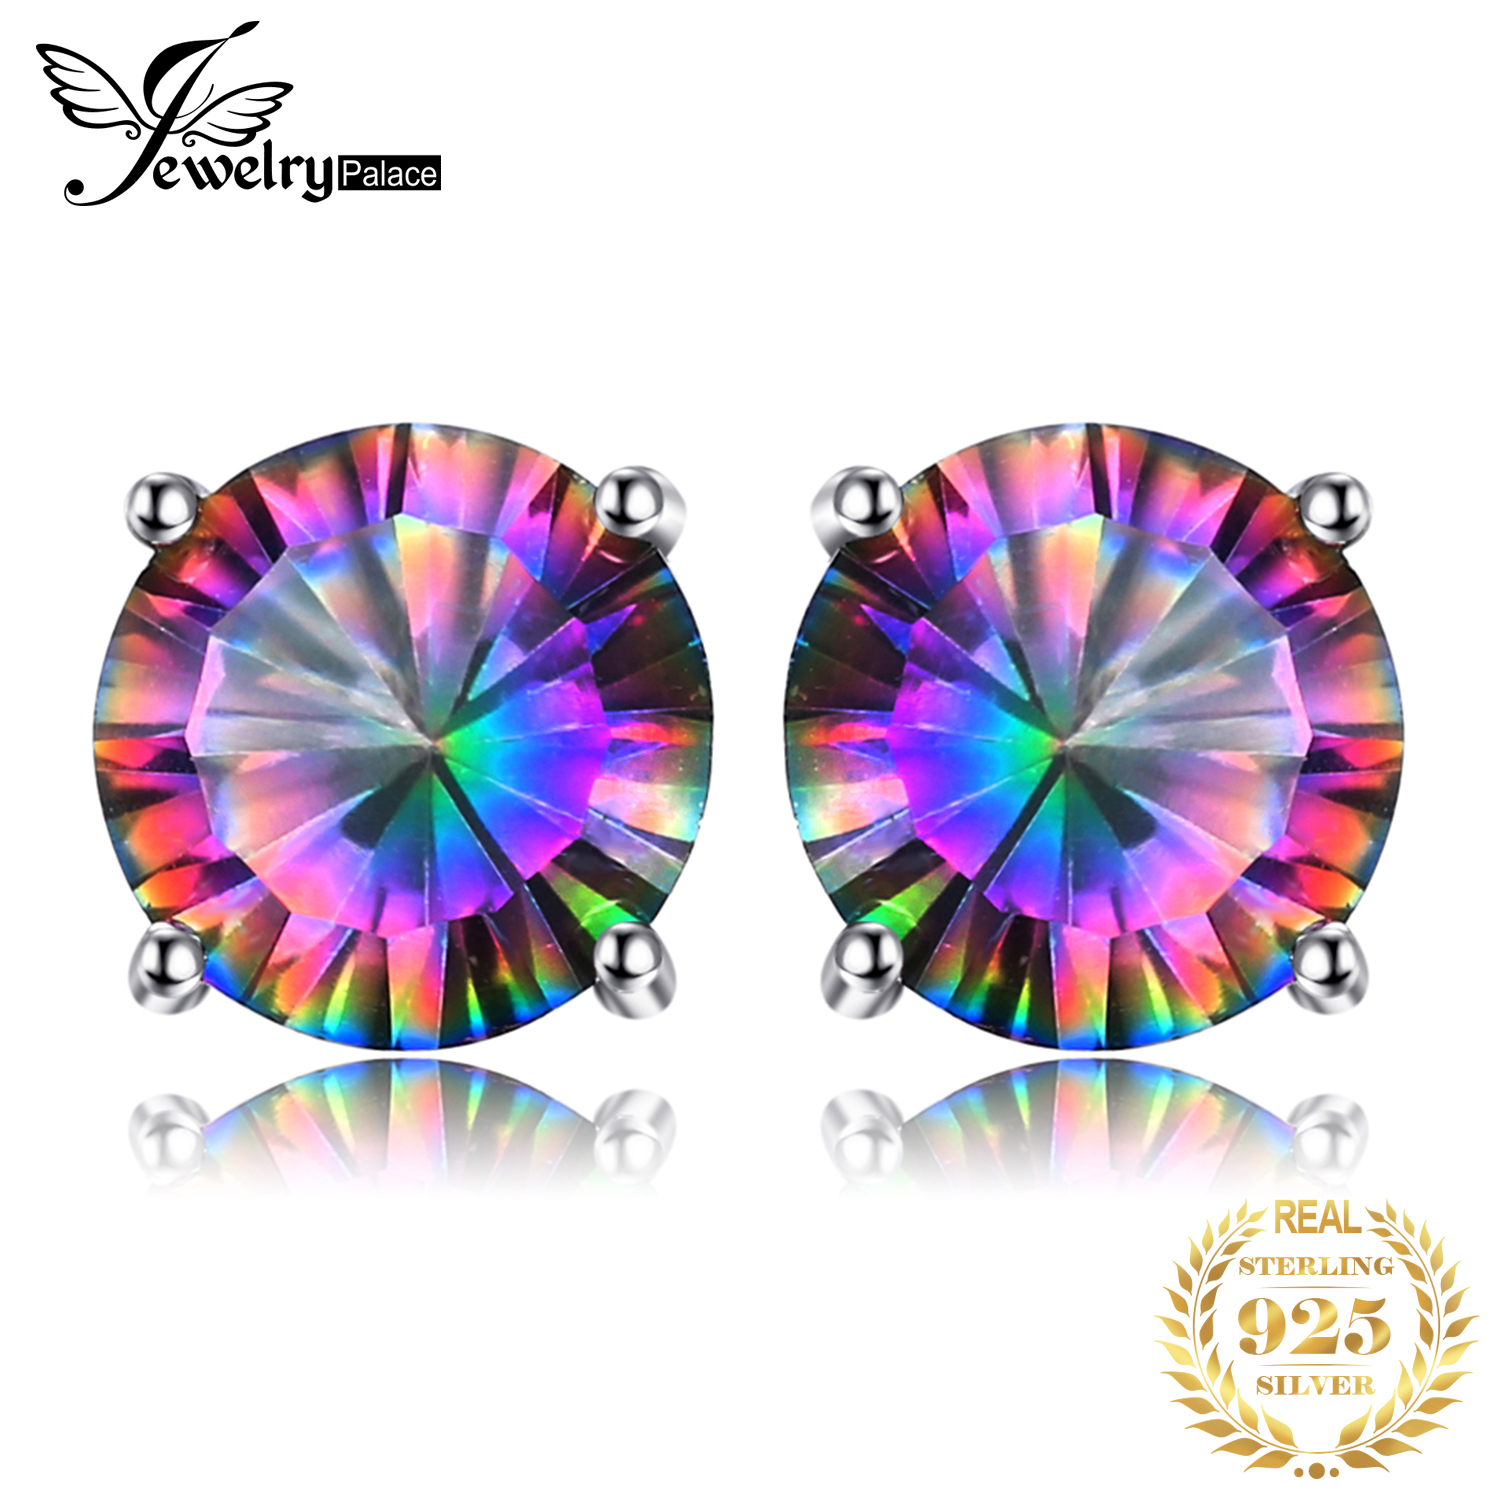 JewelryPalace Genuine Rainbow Mystic Topaz Stud Earrings 925 Sterling Silver Earrings For Women Gemstone Earings Fashion Jewelry